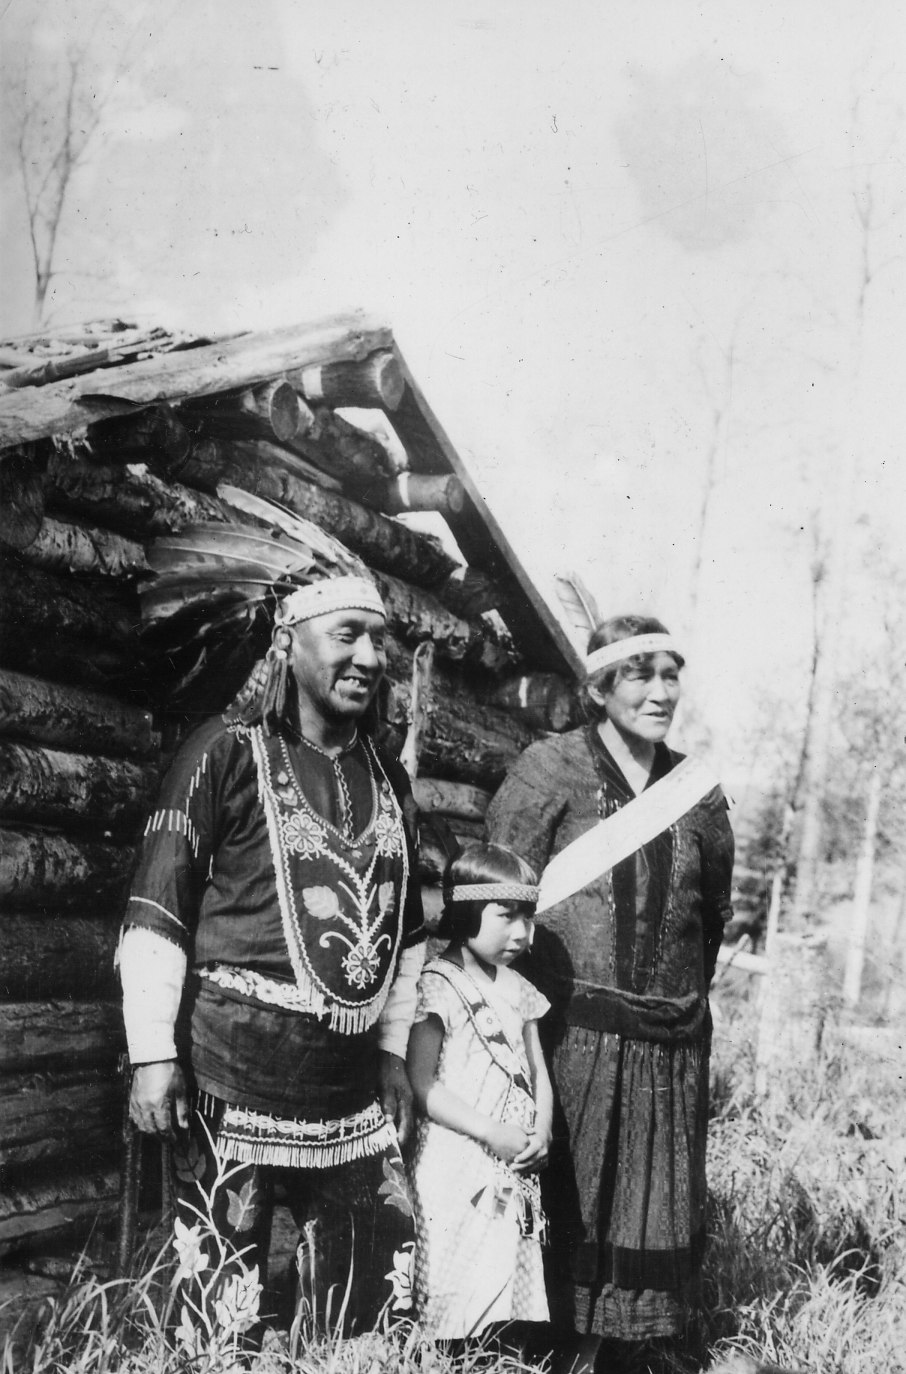 Photograph of Chief Medicine Man of Chippewa Indians Axel Pasey with His Family - NARA - 2128360